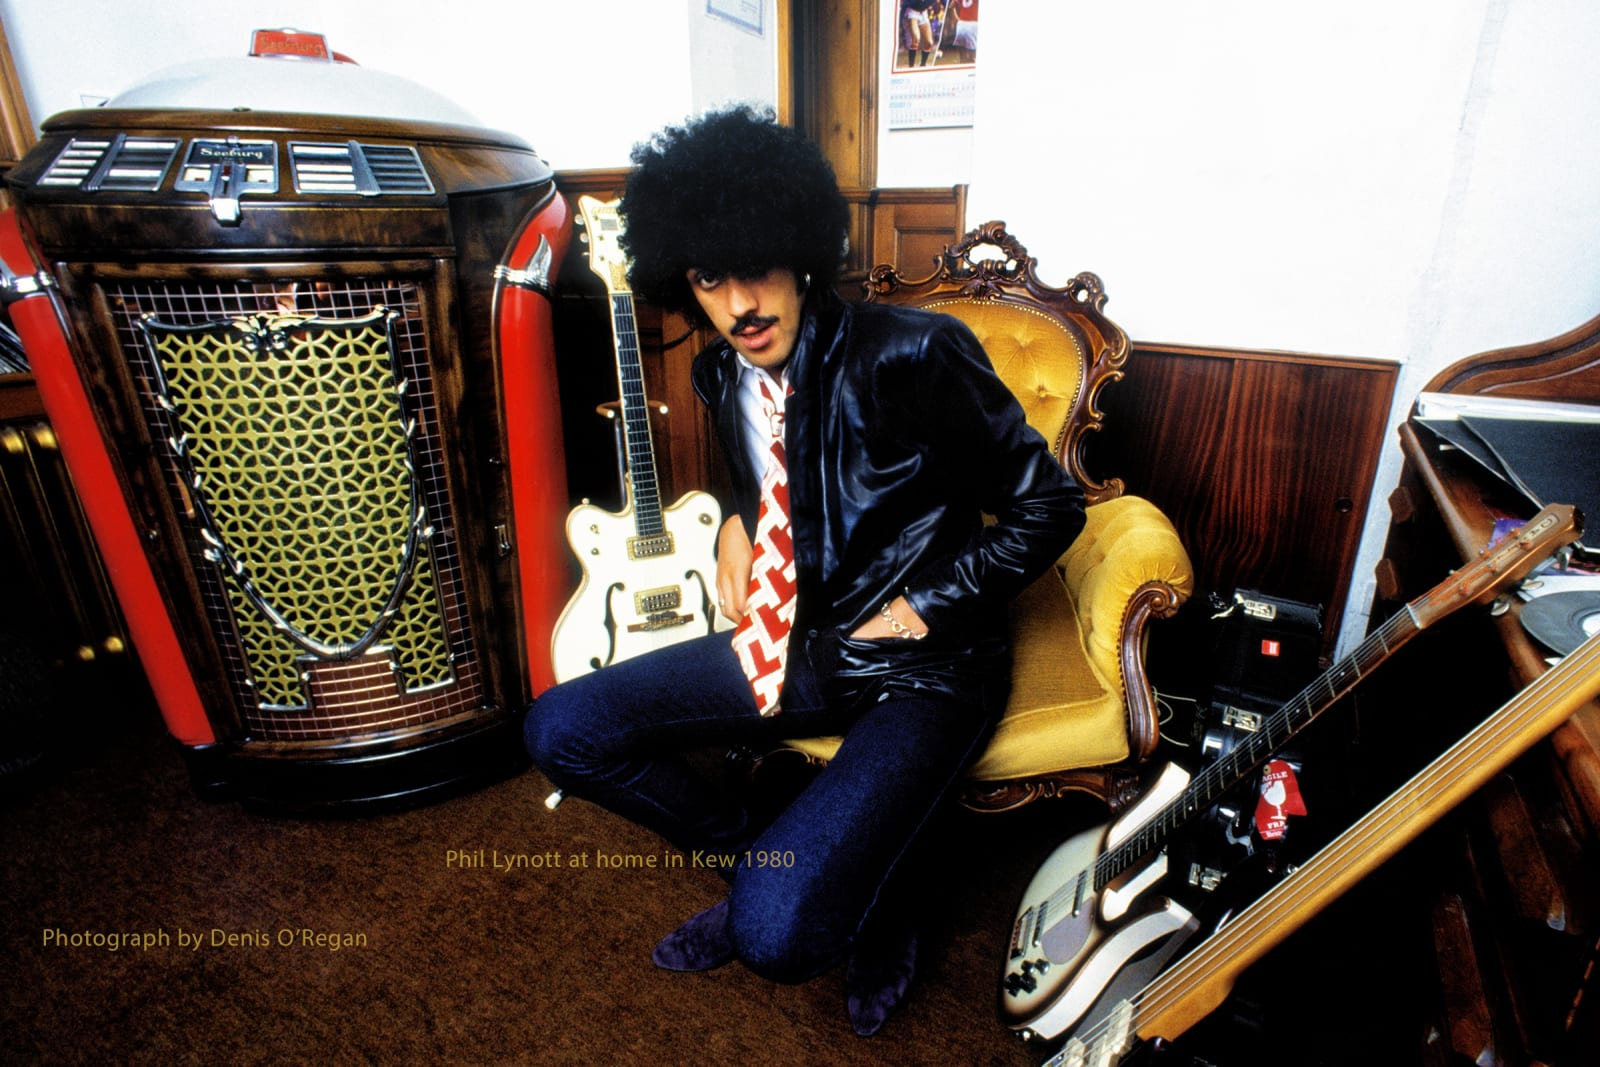 THIN LIZZY, Phil Lynott at home in Kew, 1980